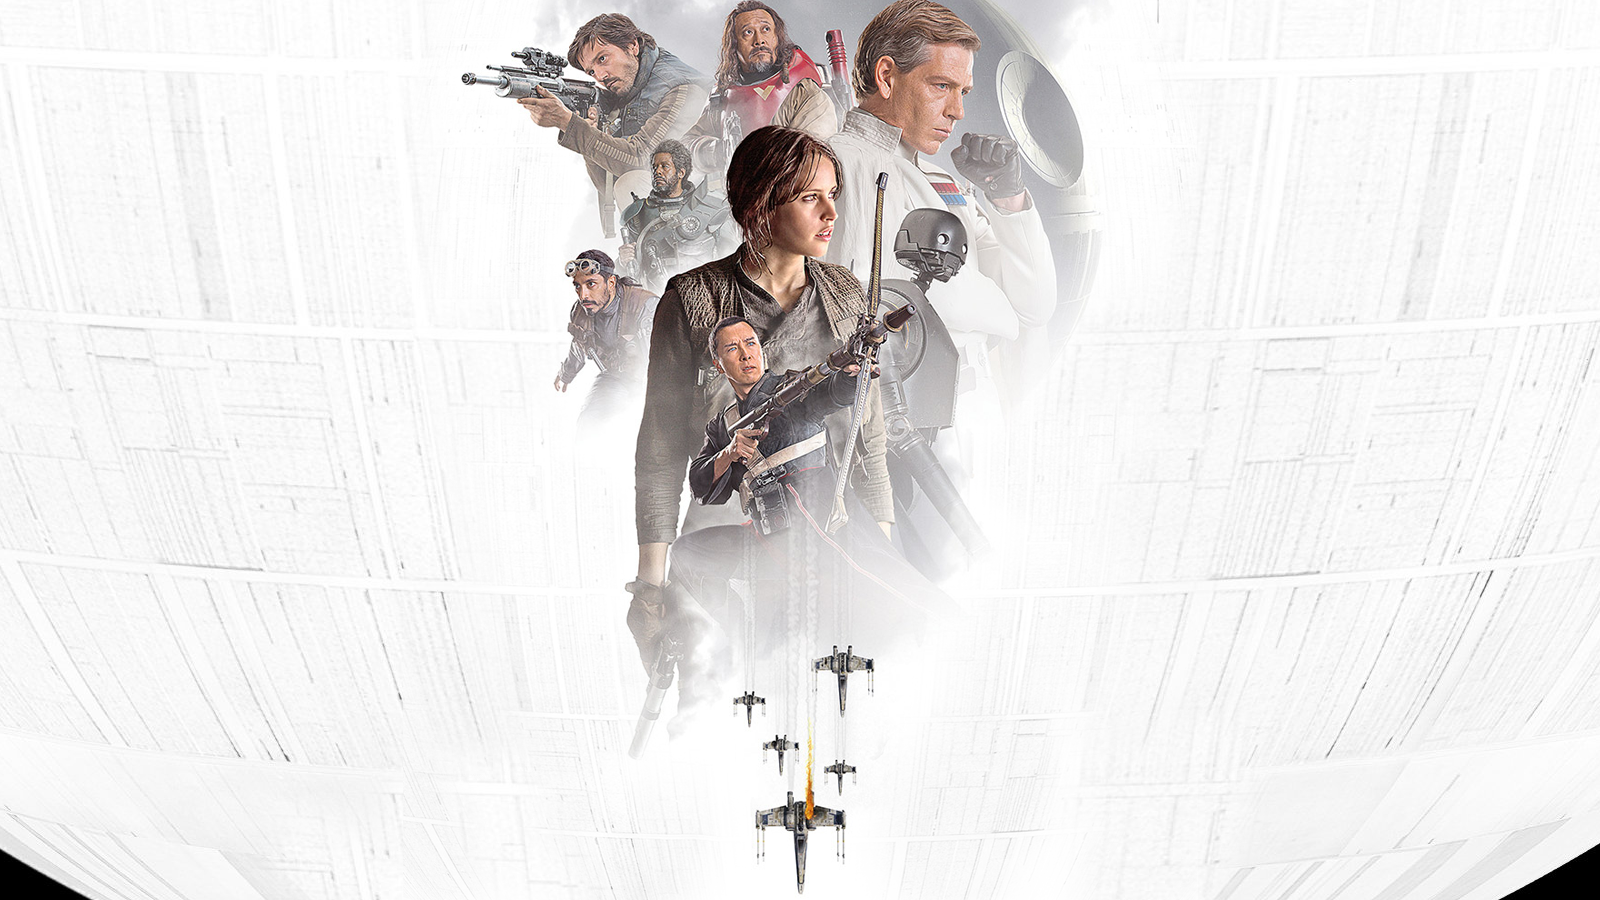 rogue one wallpaper director - photo #19